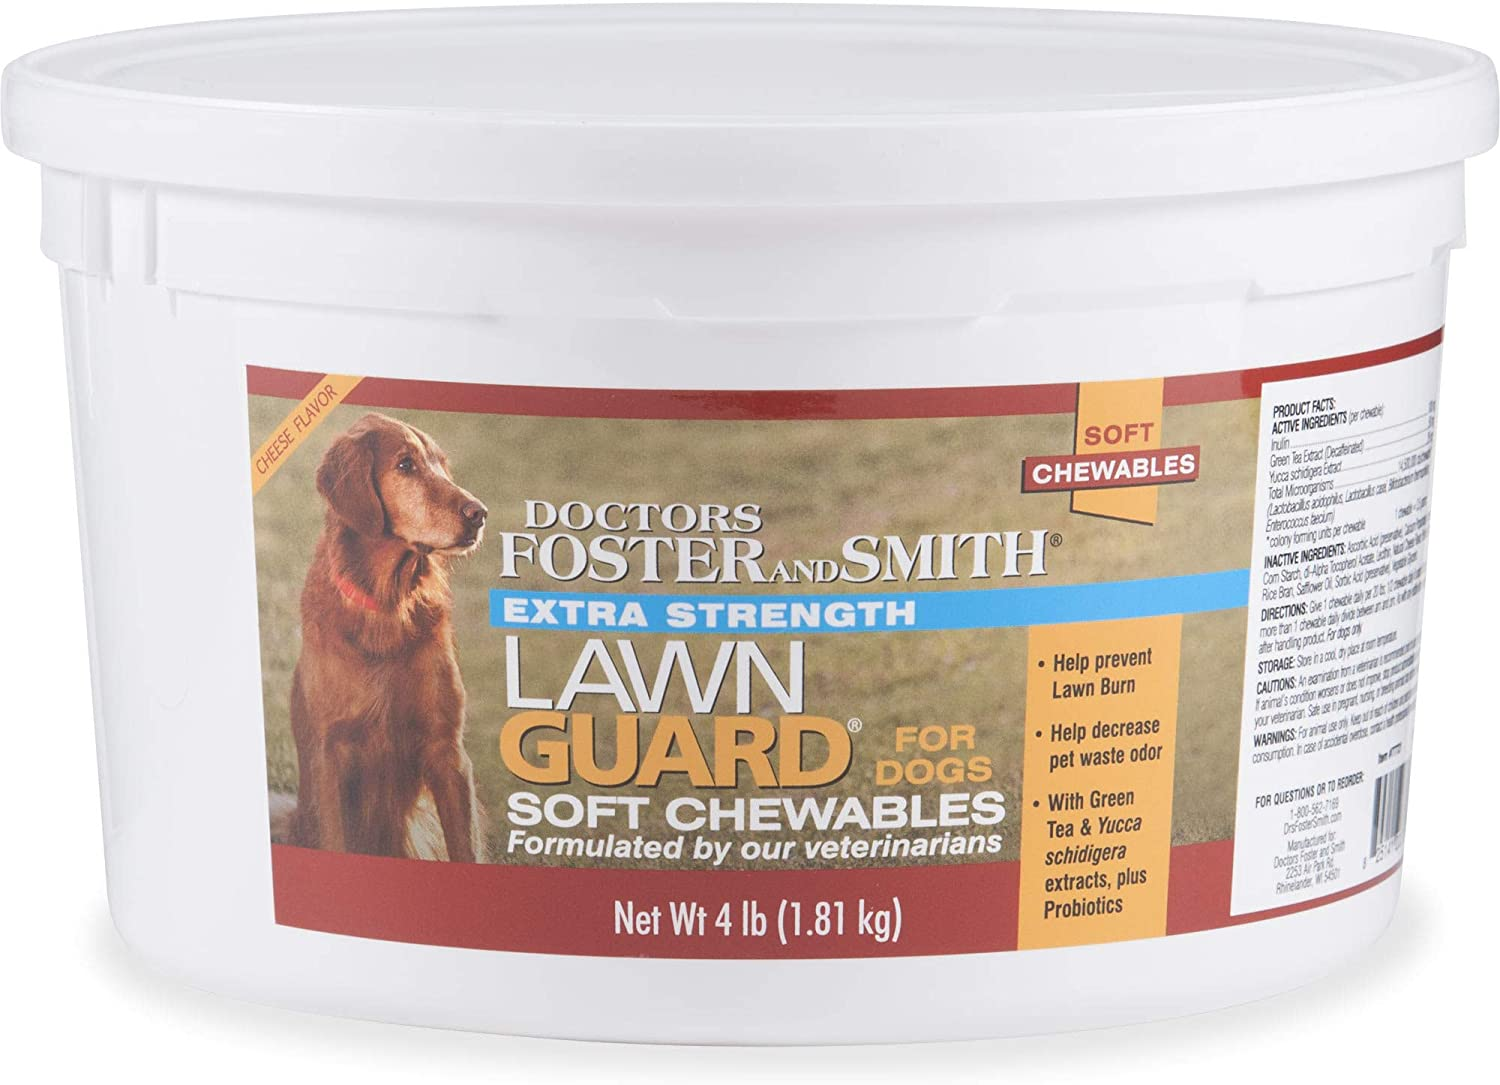 PETCO Brand - DRS. Foster and Smith Extra Strength Lawn Guard Soft Chews for Dogs, 4 lbs.